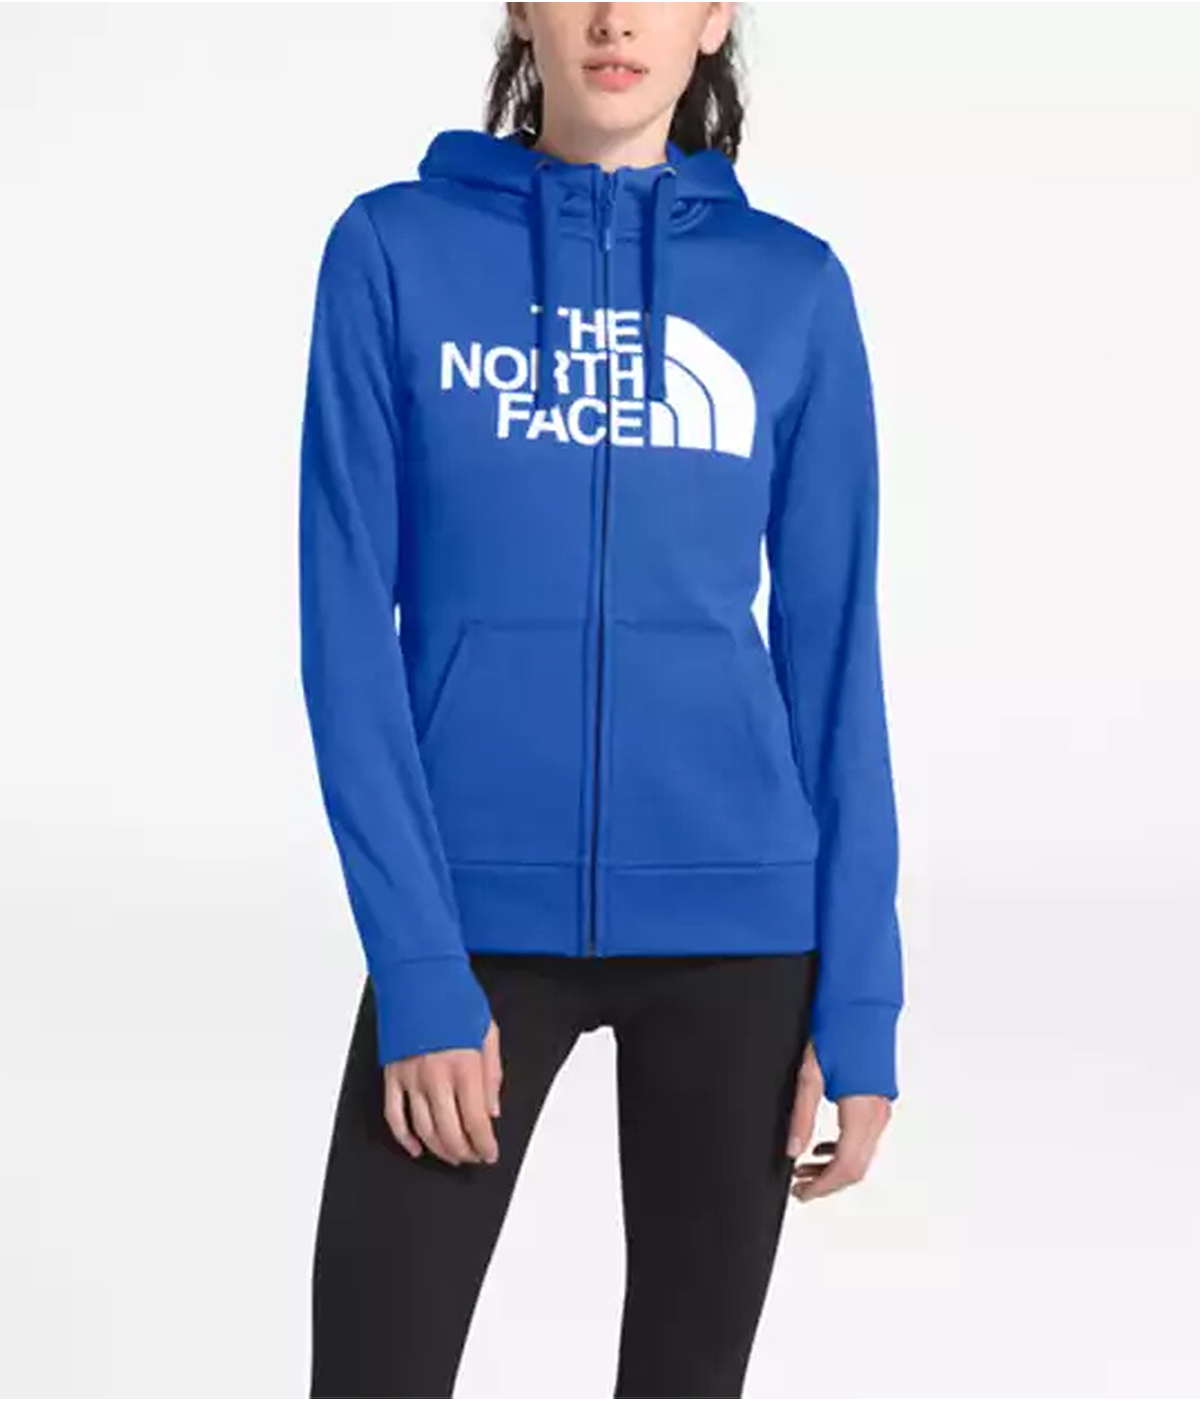 north-face-hoodie-blue